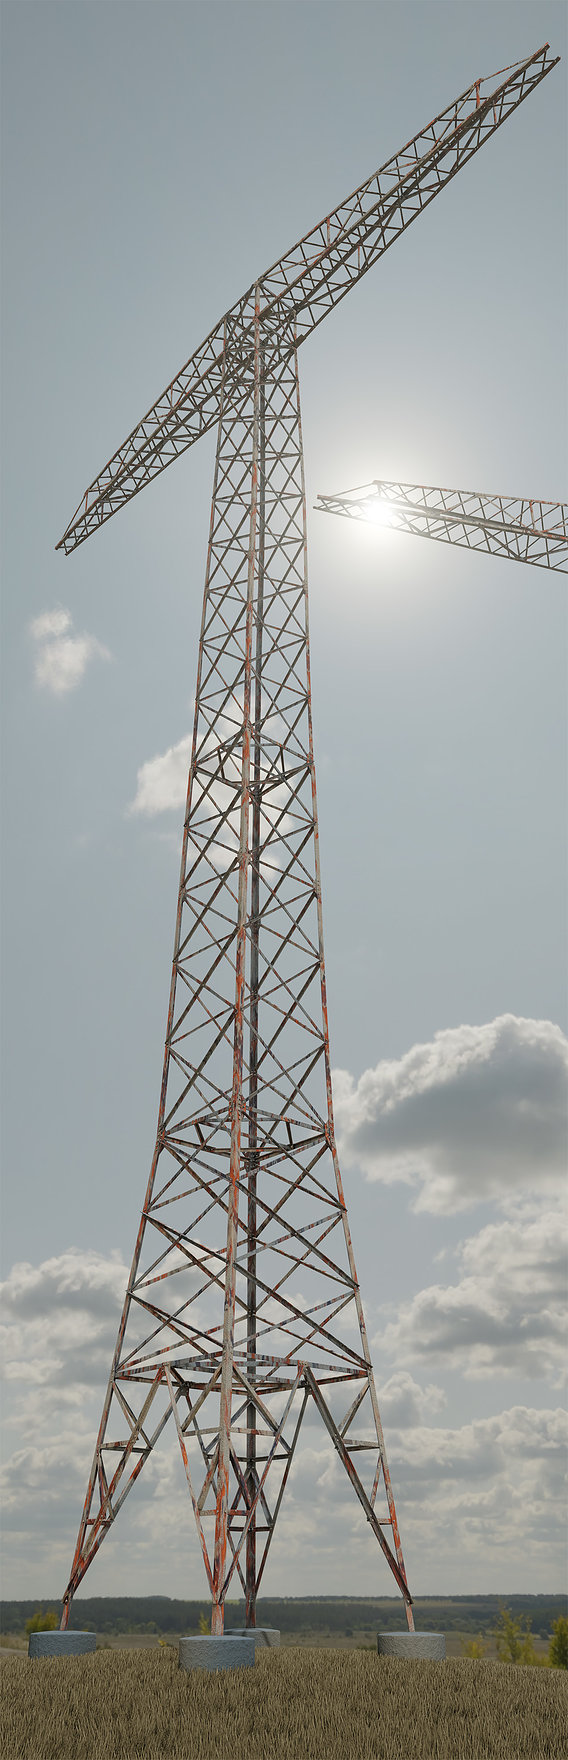 Rusty Transmission Tower 32 Meter